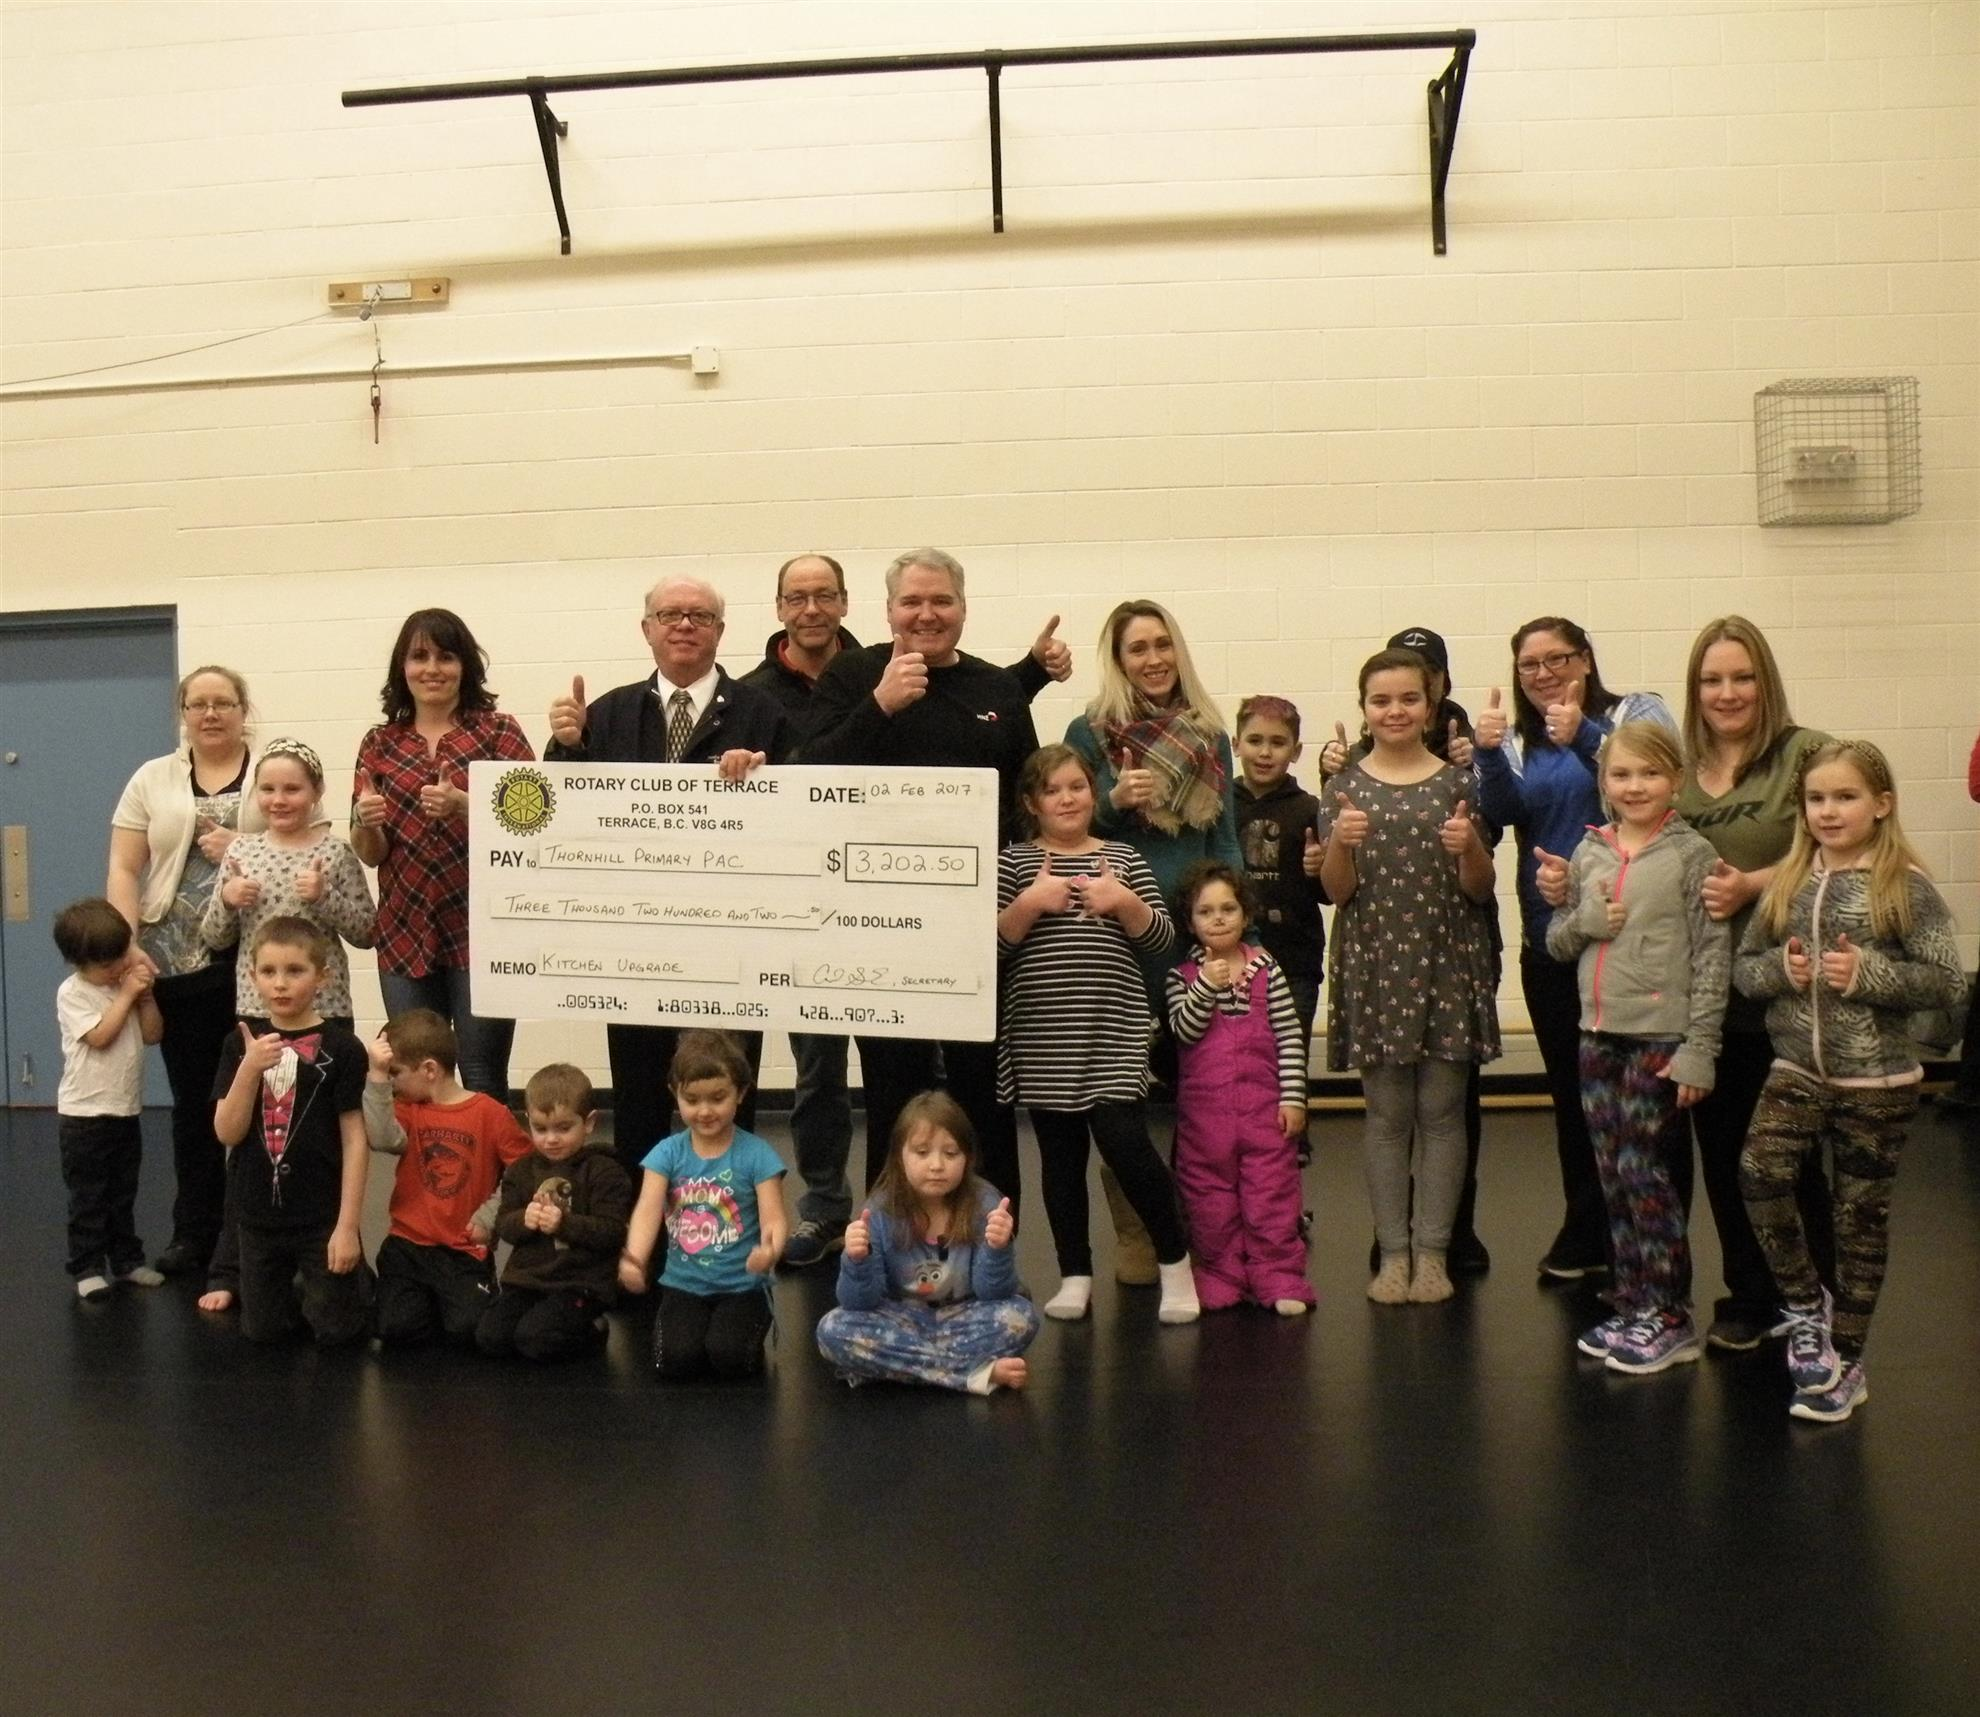 list of professional skills%0A The Rotary Club of Terrace is pleased to support the Thornhill Primary  Parent Advisory Committee  We donated           towards the much needed  upgrades and